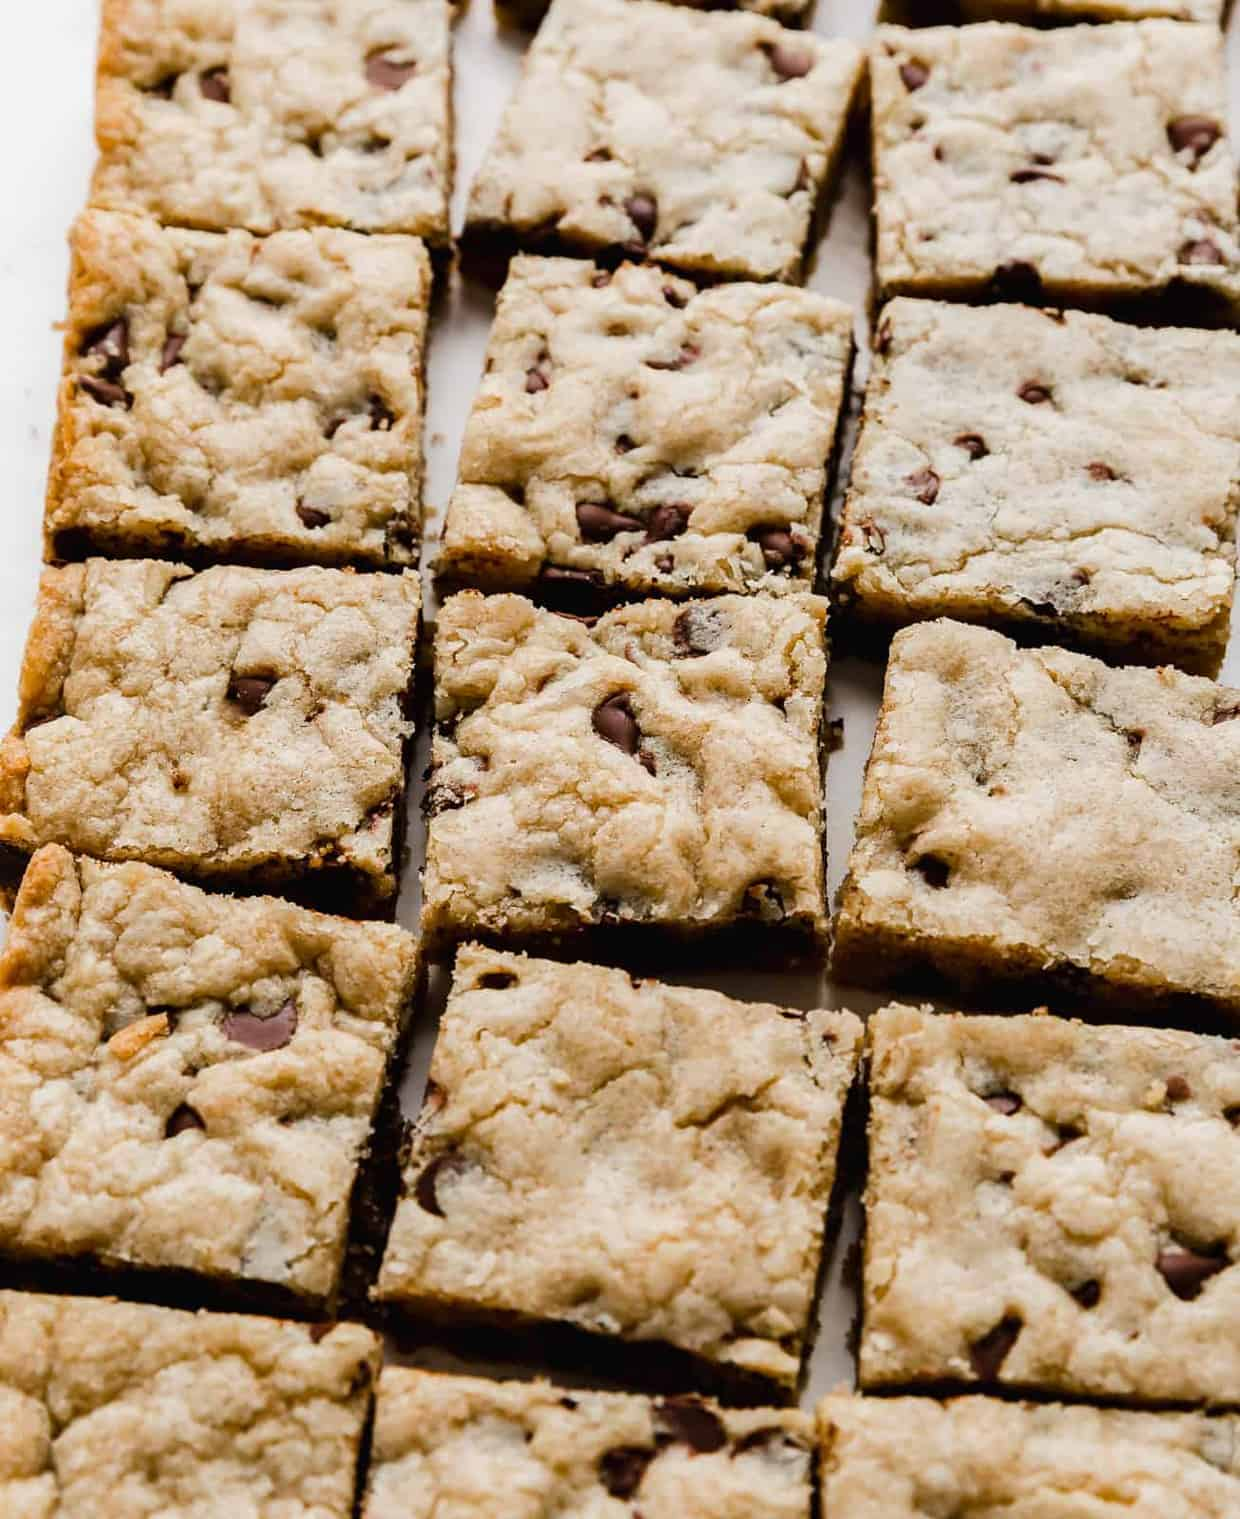 A side angle of Chocolate Chip Cookie Bars cut into squares.